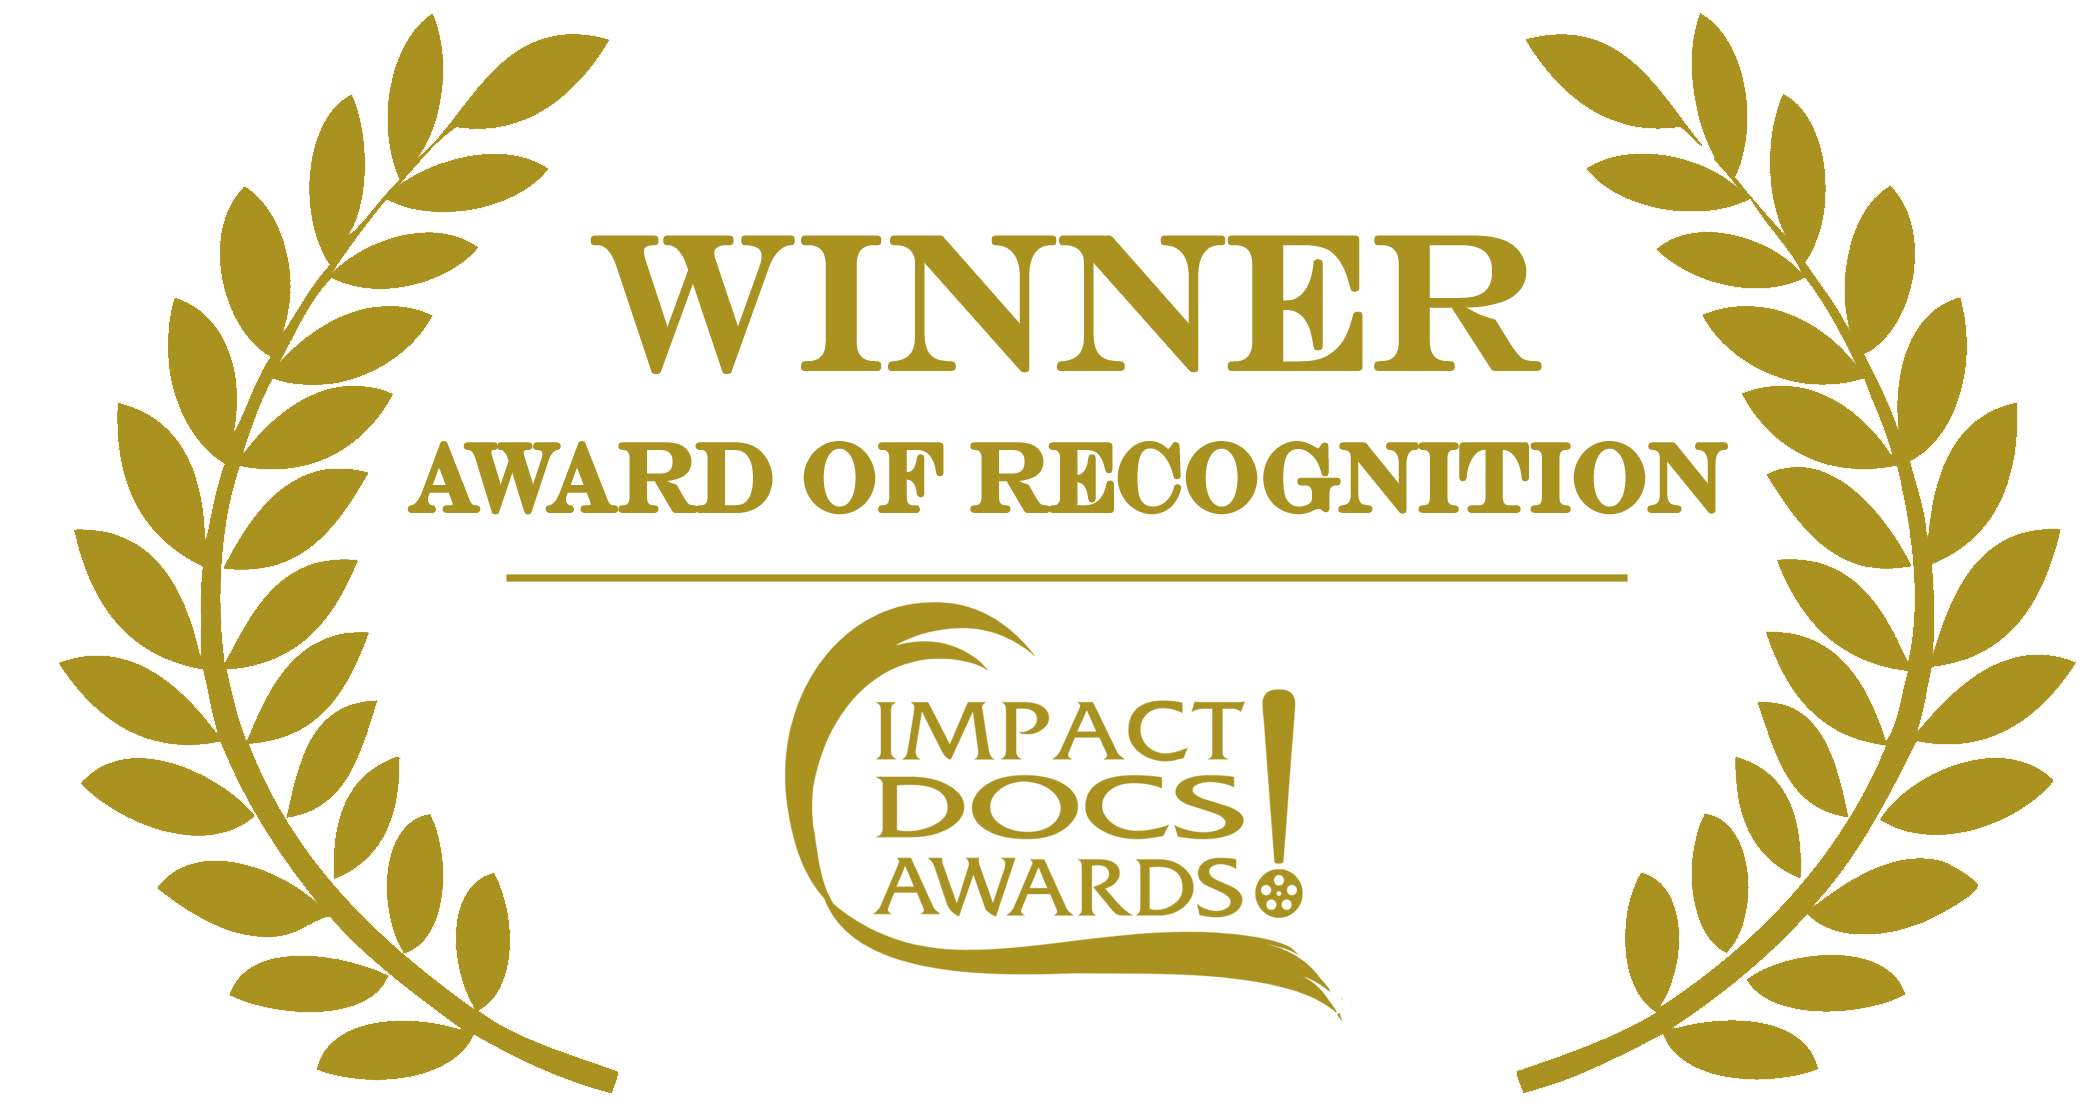 RECOGNITION-LOGO-Gold.png